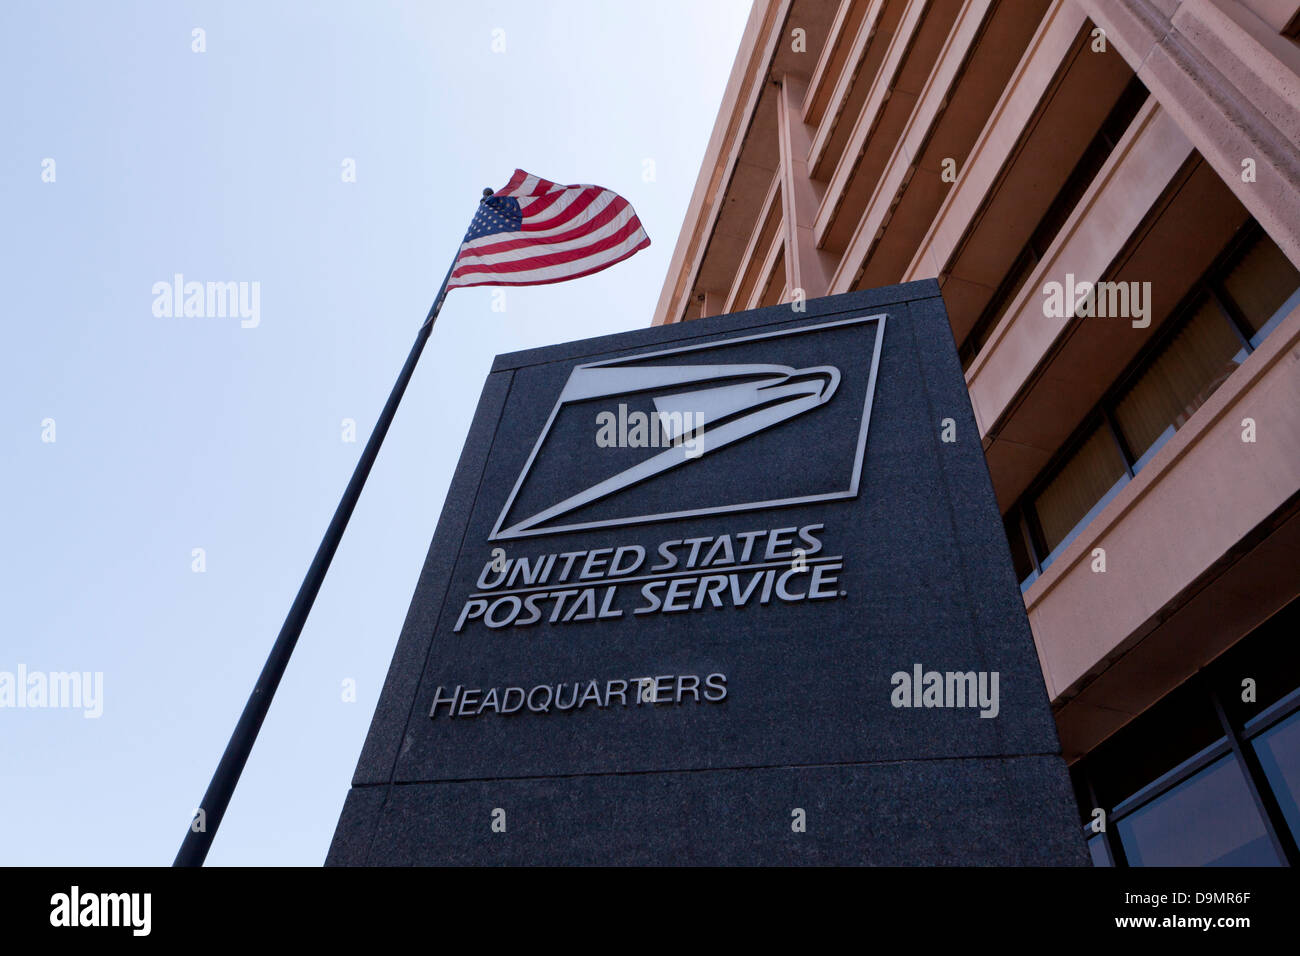 Postal Service High Resolution Stock Photography And Images Alamy